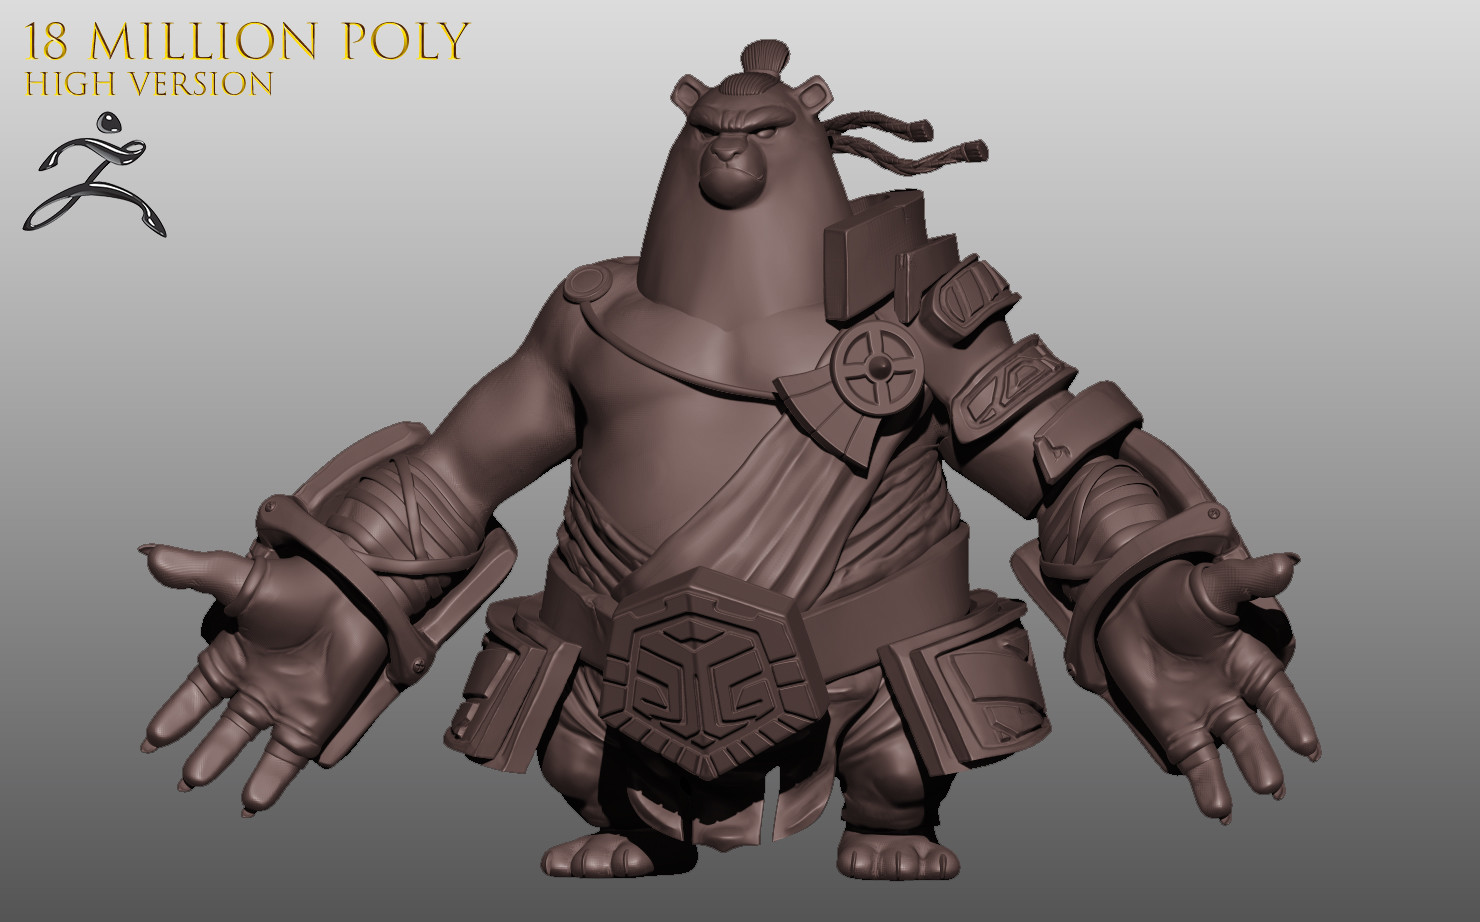 High poly version with ZBRUSH